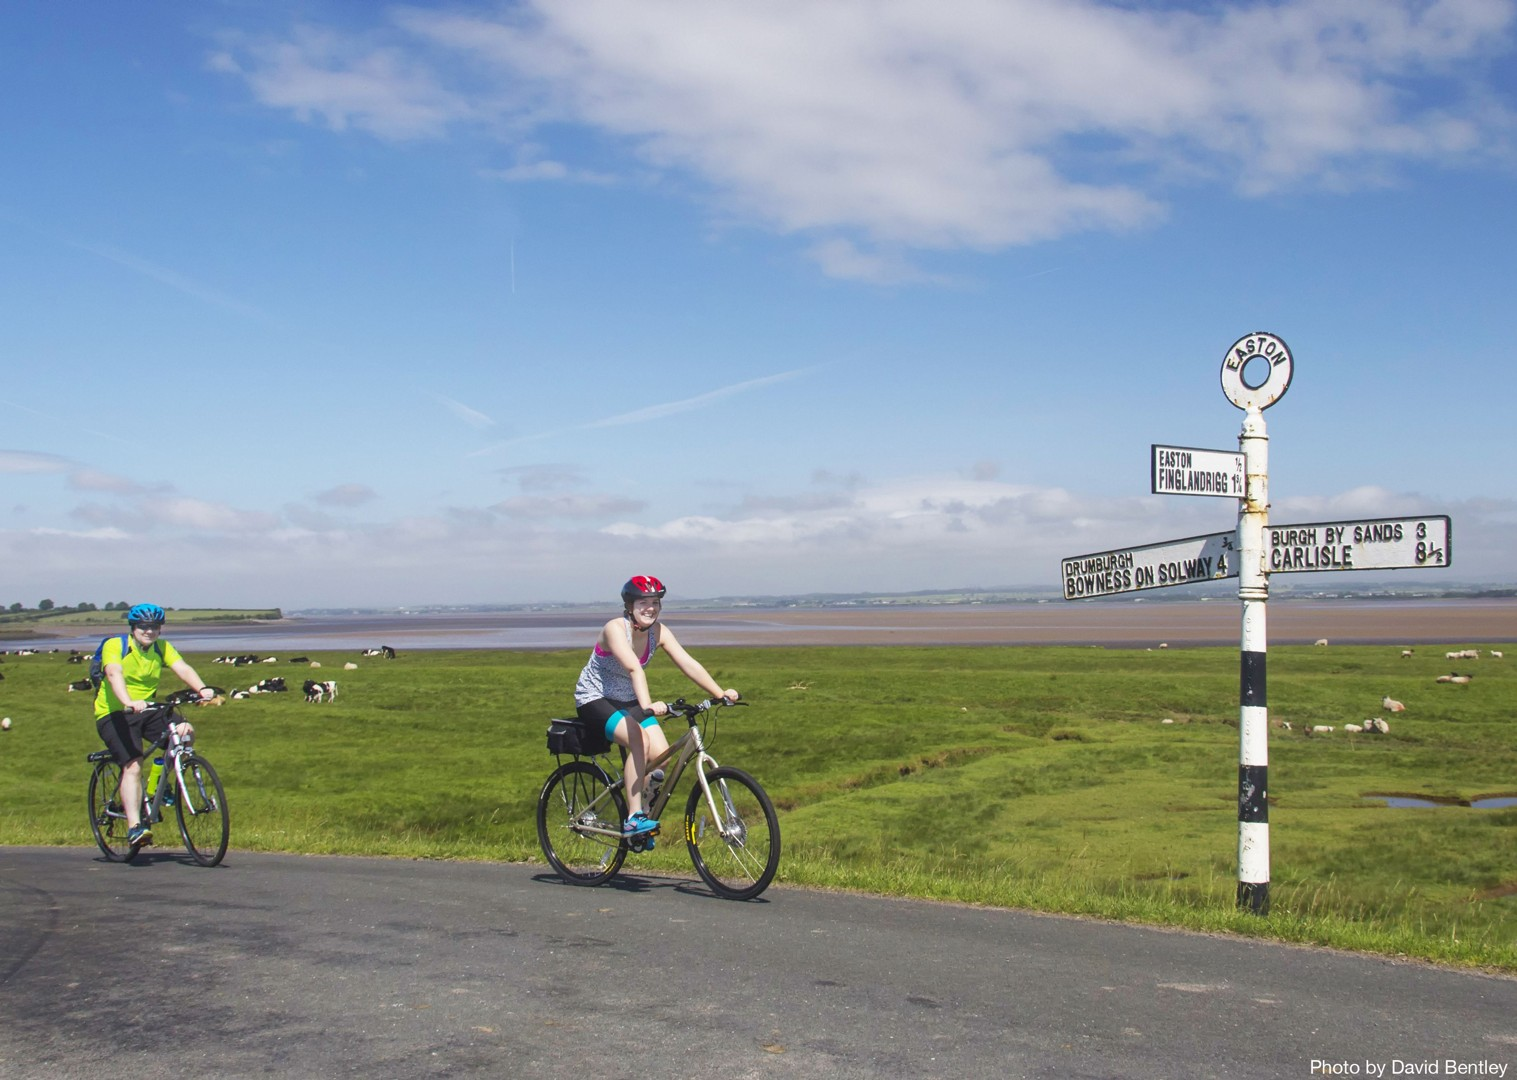 UK-Hadrians-Cycleway-Self-Guided-Leisure-Cycling-Holiday.jpg - UK - Hadrian's Cycleway - 3 Days Cycling - Self-Guided Leisure Cycling Holiday - Leisure Cycling